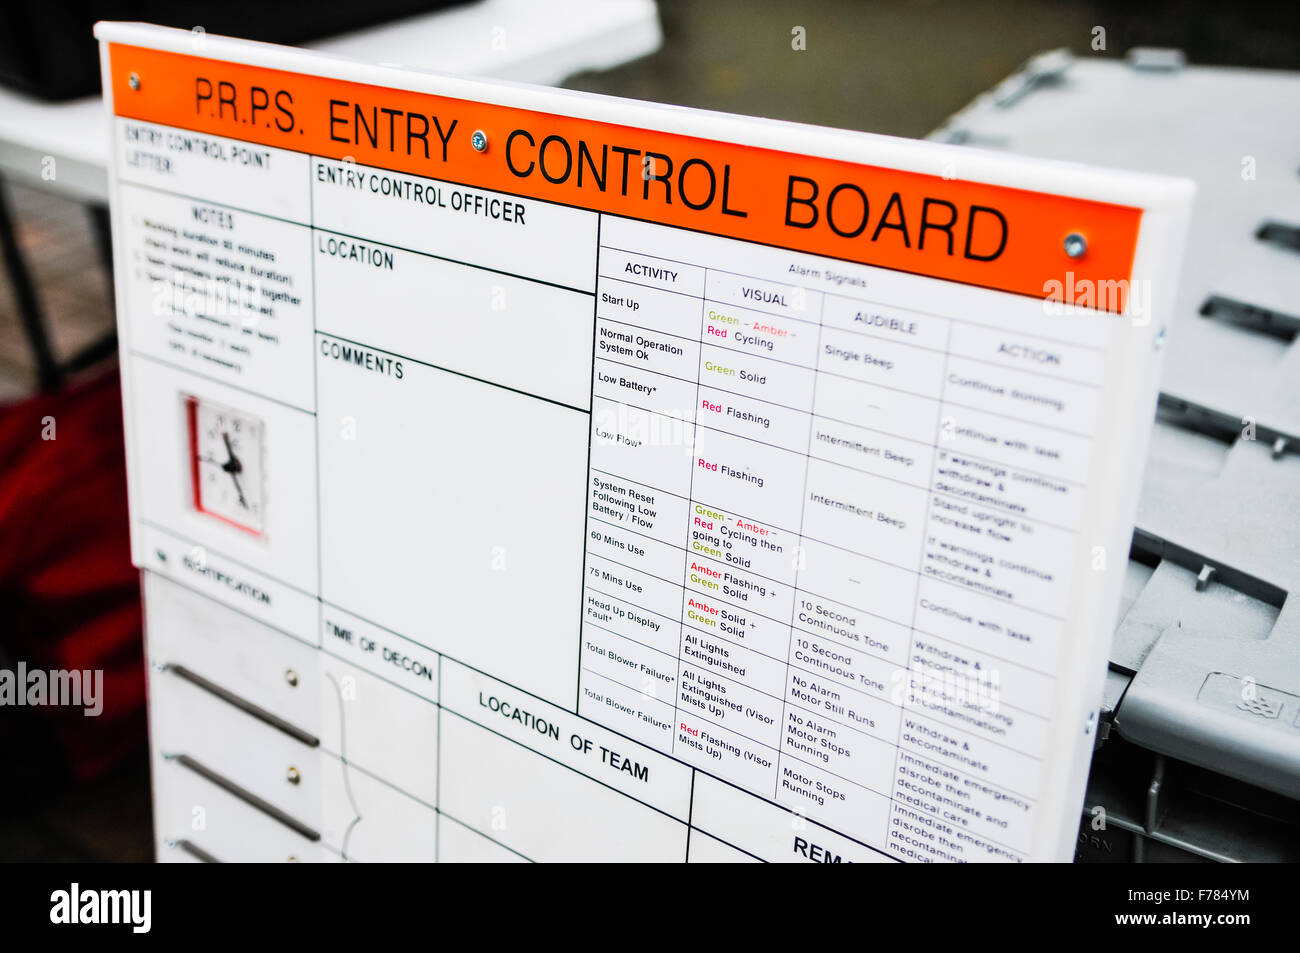 Northern Ireland. 26th November, 2015. PRPS entry control board to ensure the safety of operators using a Respirex - Stock Image